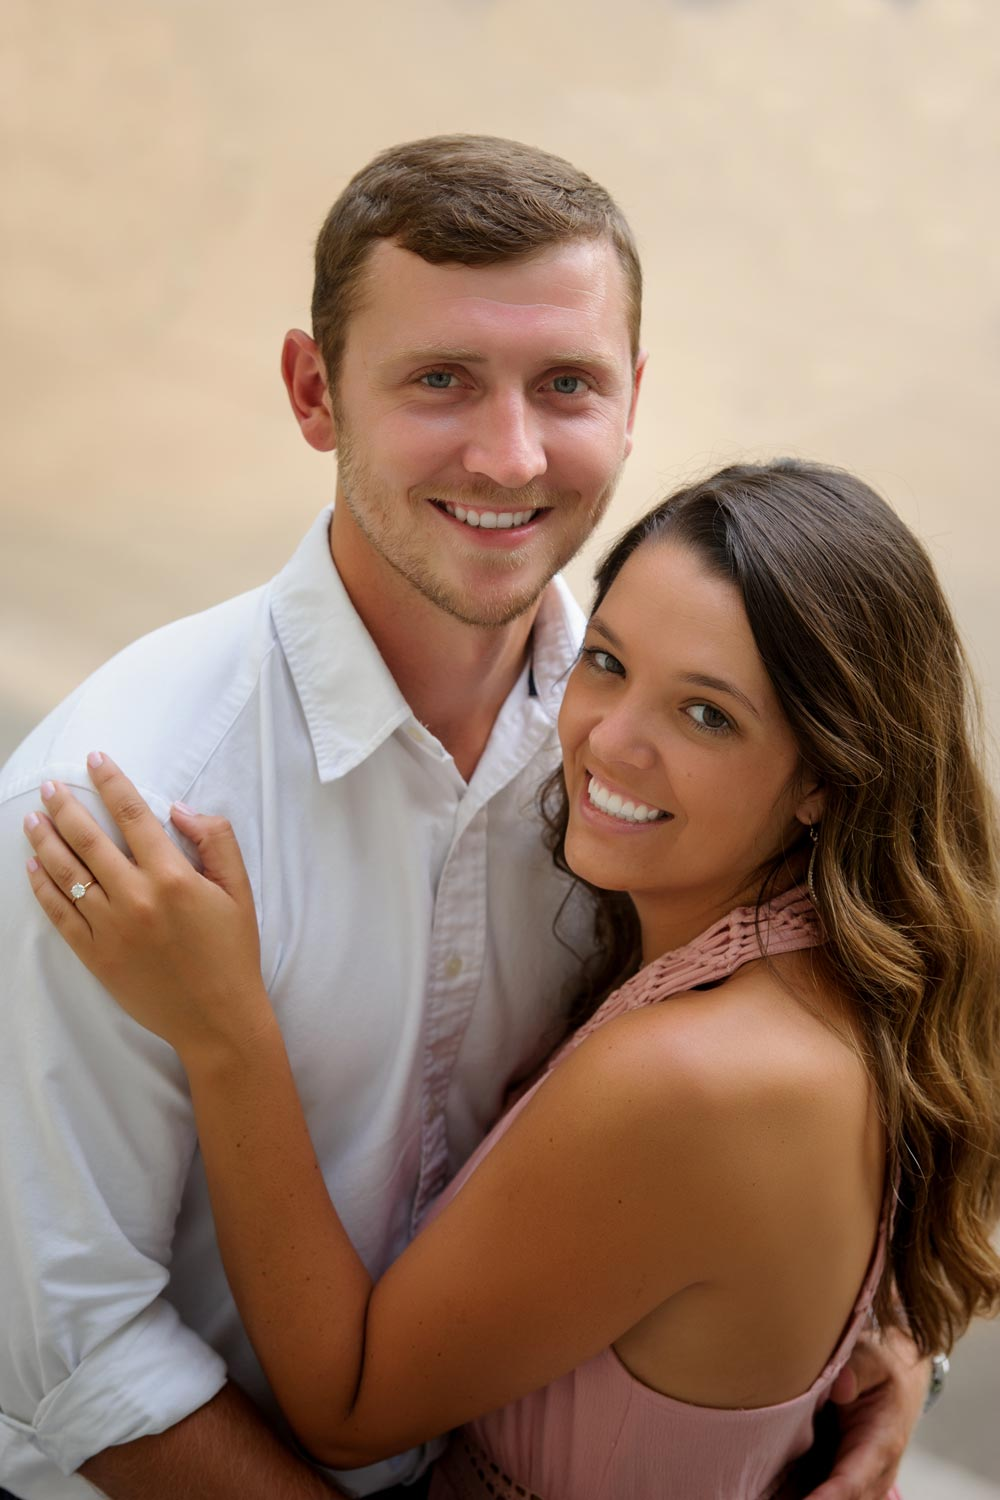 engagement-portraits-scott-walz-studio-walz45.jpg